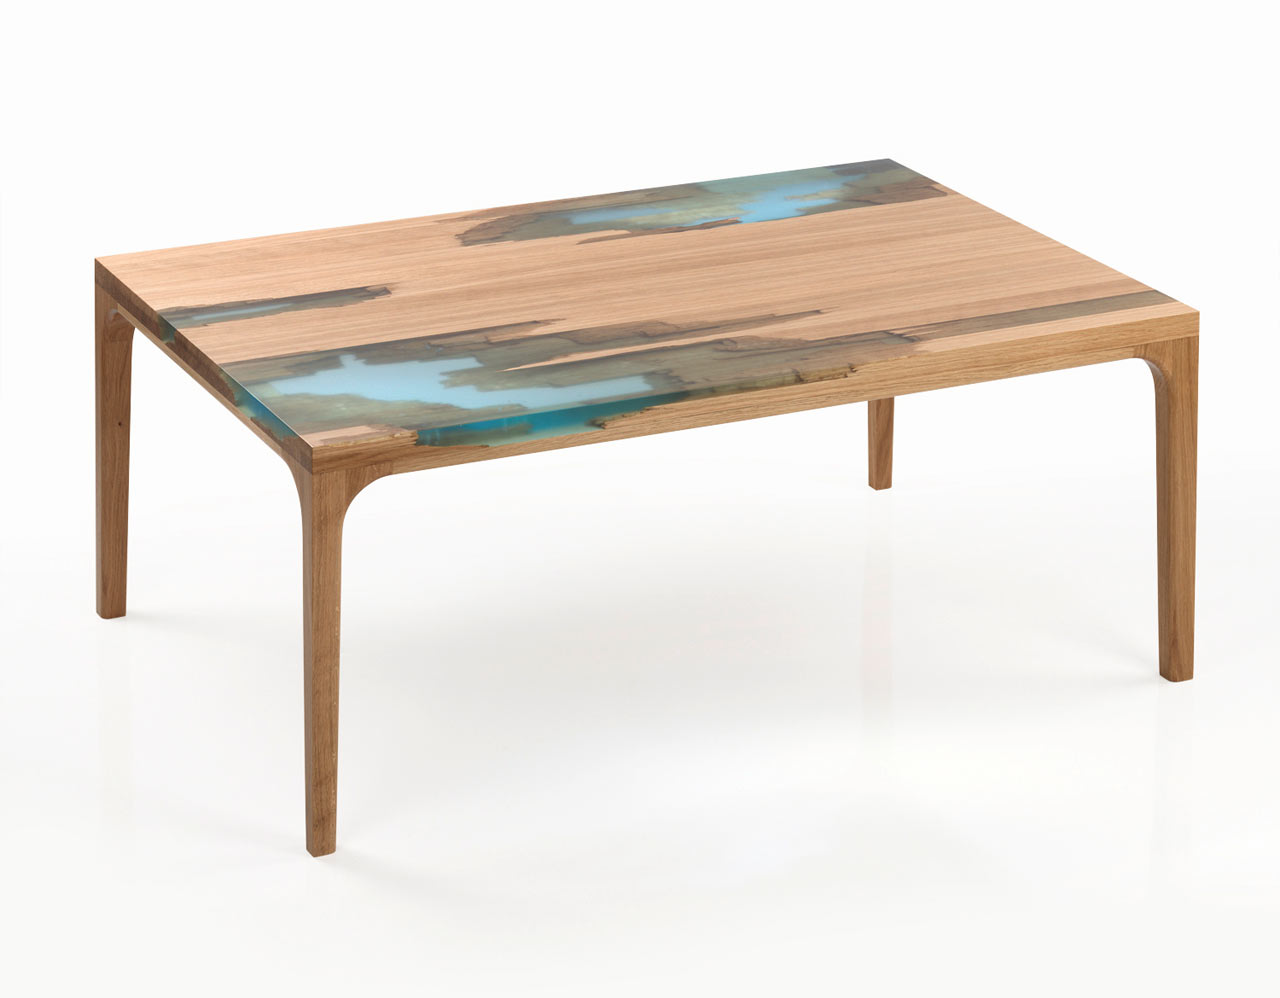 MANUFRACT: Furniture Inspired by Self-Healing Trees